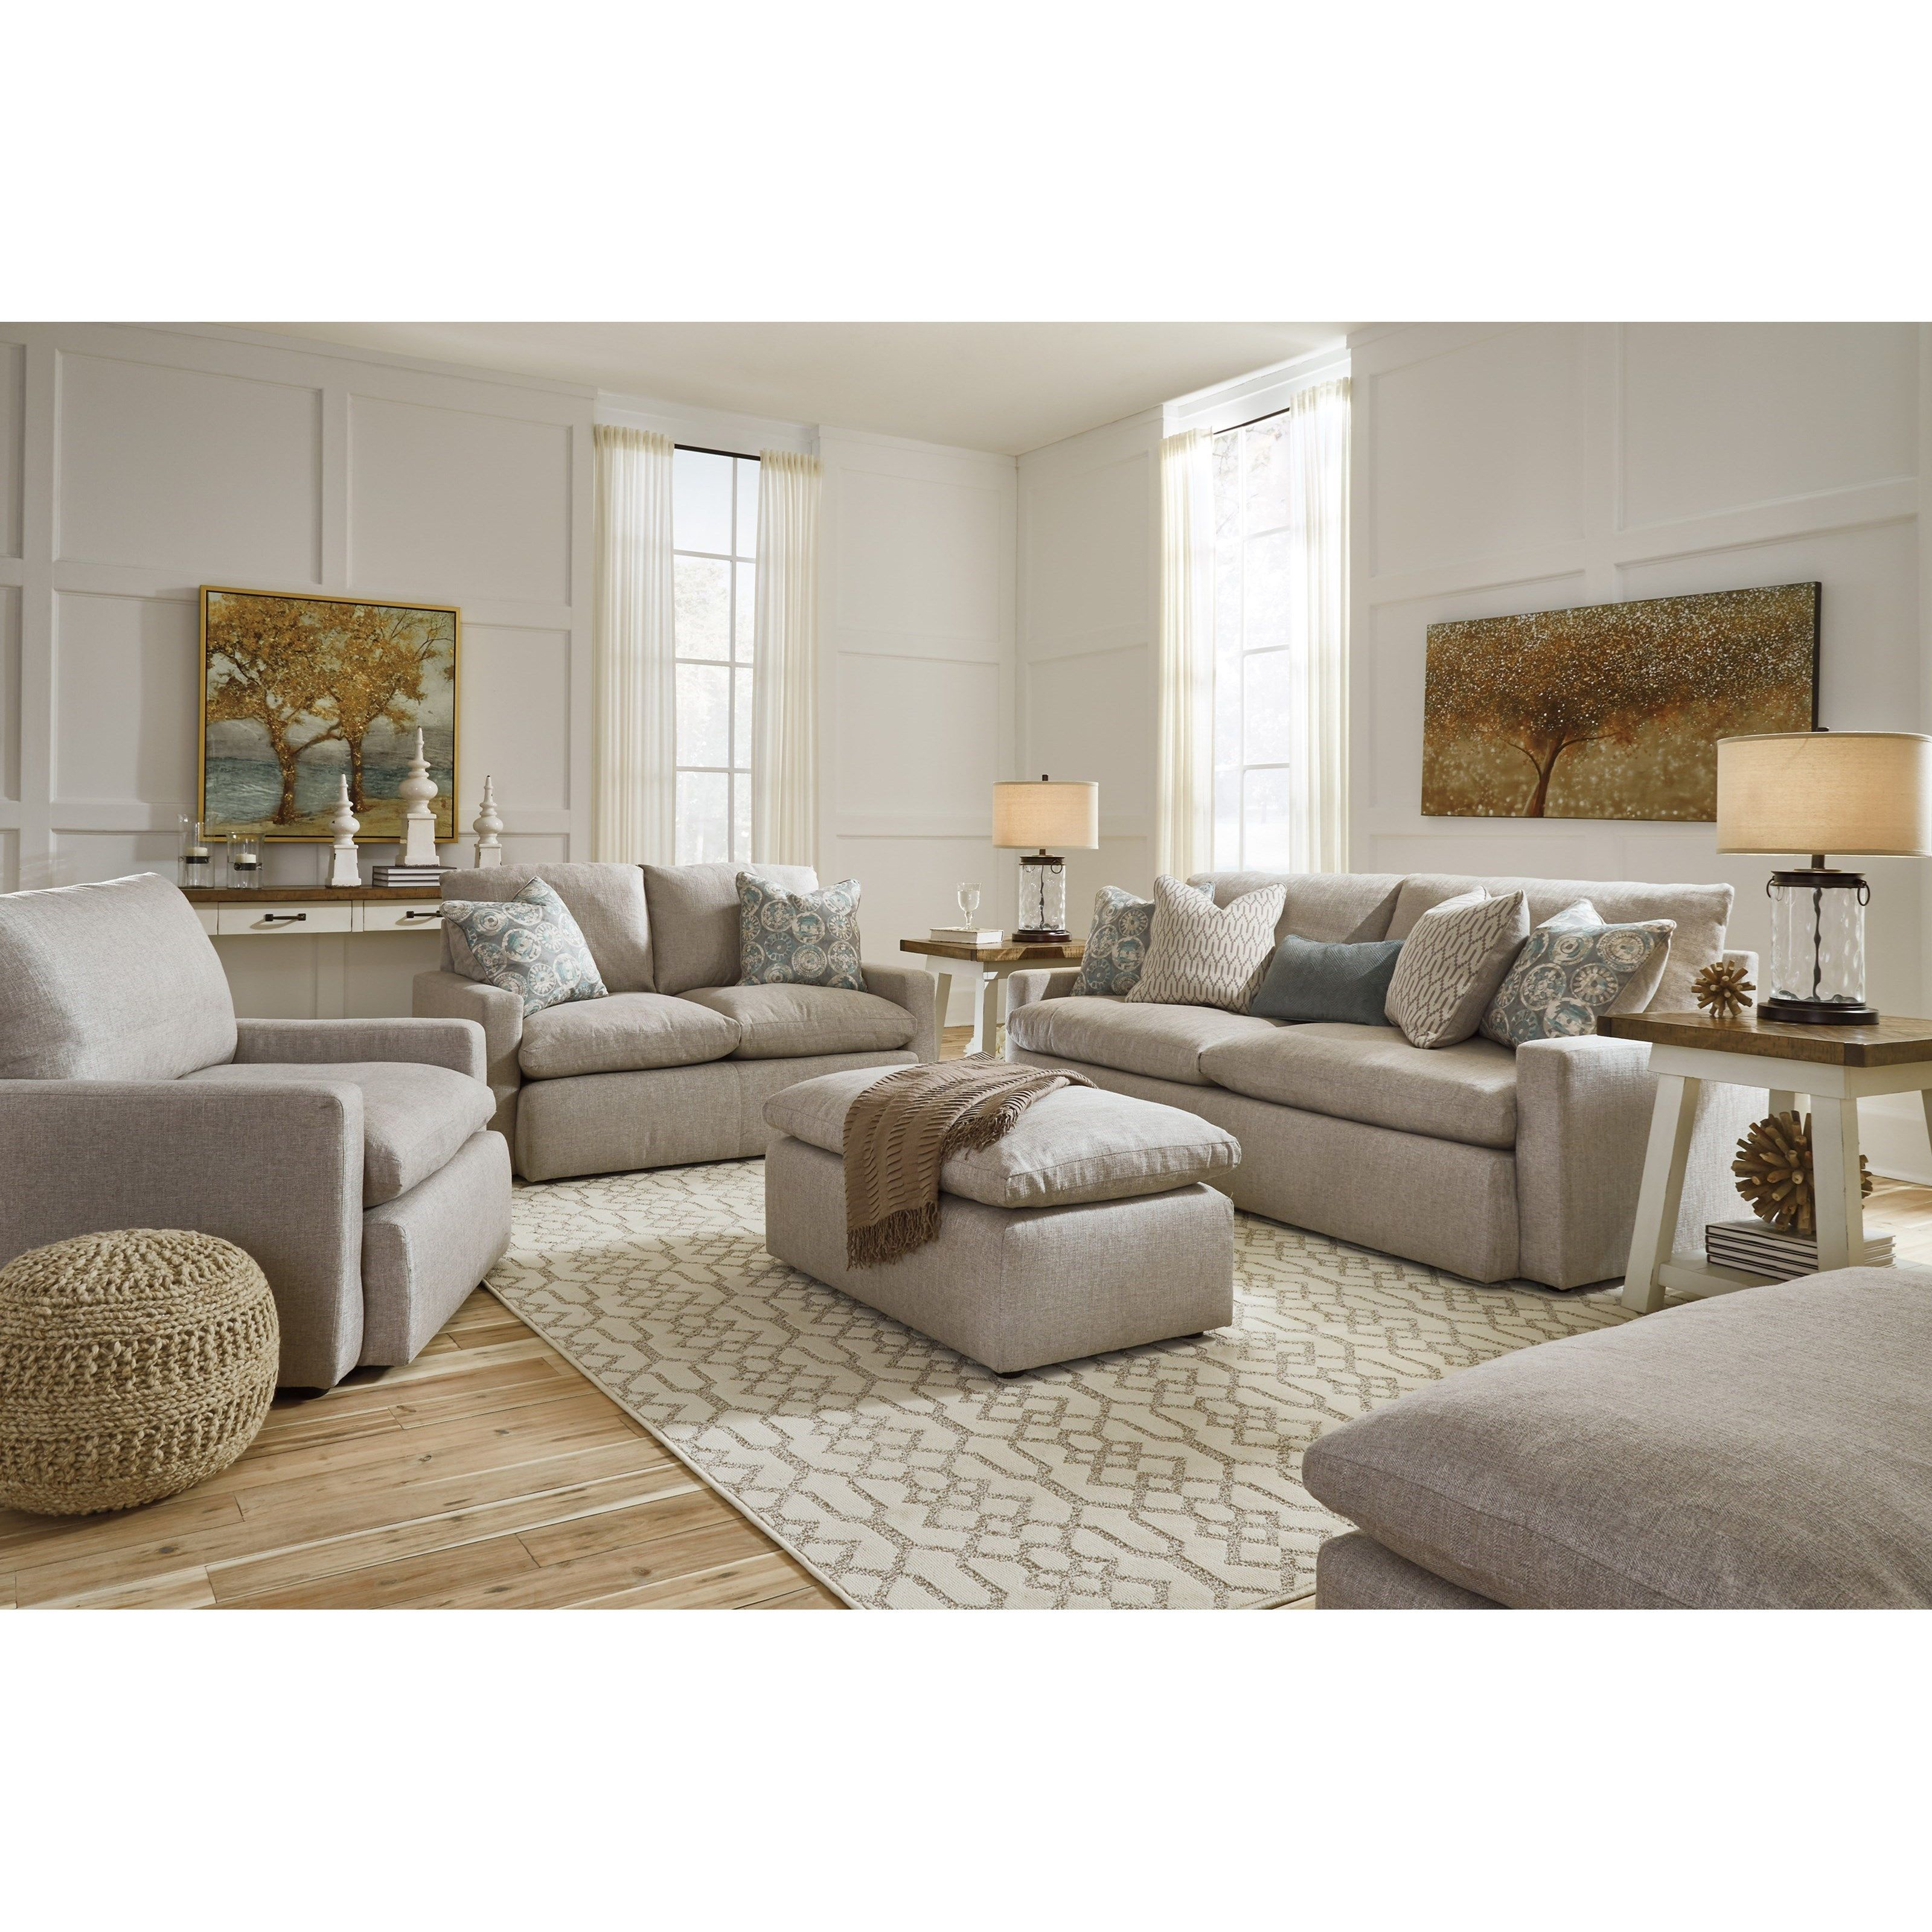 Sofa With Feather Blend Cushions Furniture Chair A